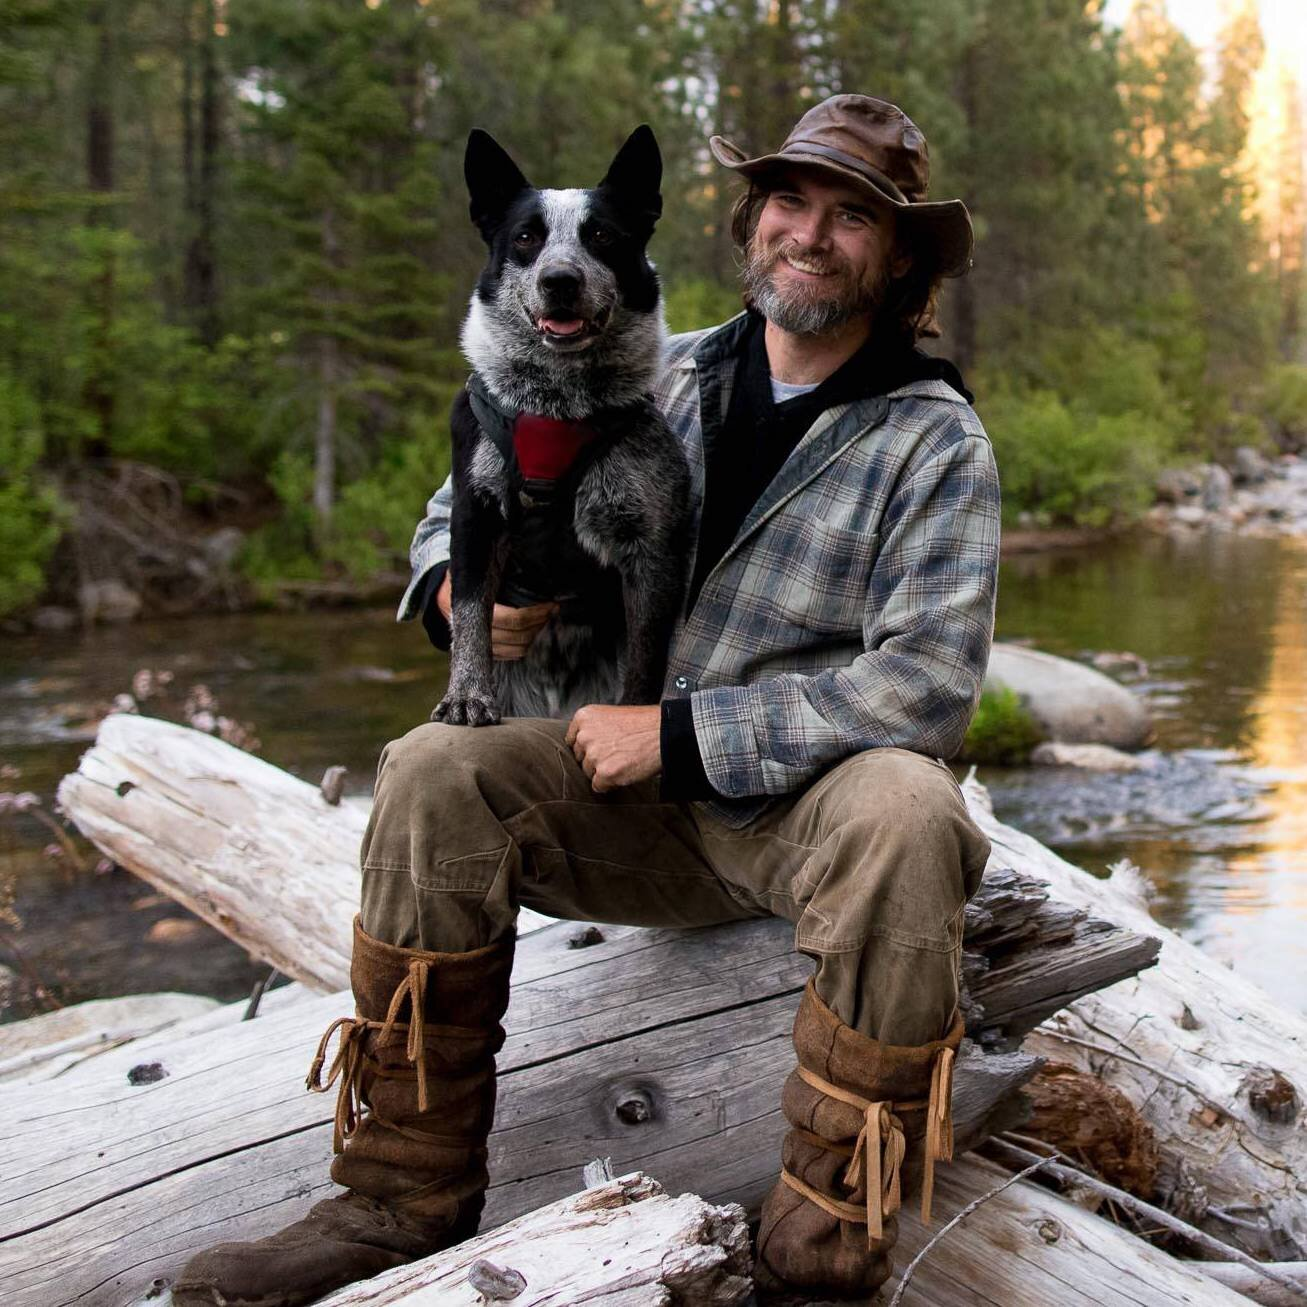 "Heath Smith    Founder, Bounder, Instructor   It is a commonly used idiom, ""who rescued who"", when discussing dogs and their people, but it is most true when looking at the relationship between Heath and his first canine partner, Gator. The team were paired up when Heath first started doing detection dog work in 2001, and though Heath was a self-proclaimed cat person, Gator managed to steal his heart and pull Heath down a path of no return. Heath has trod in the world of conservation detection dogs ever since, walking side-by-side with many incredible rescue pups across innumerous landscapes. The more Heath learned from these sage animals, the more he wanted to share this newfound wisdom with others."